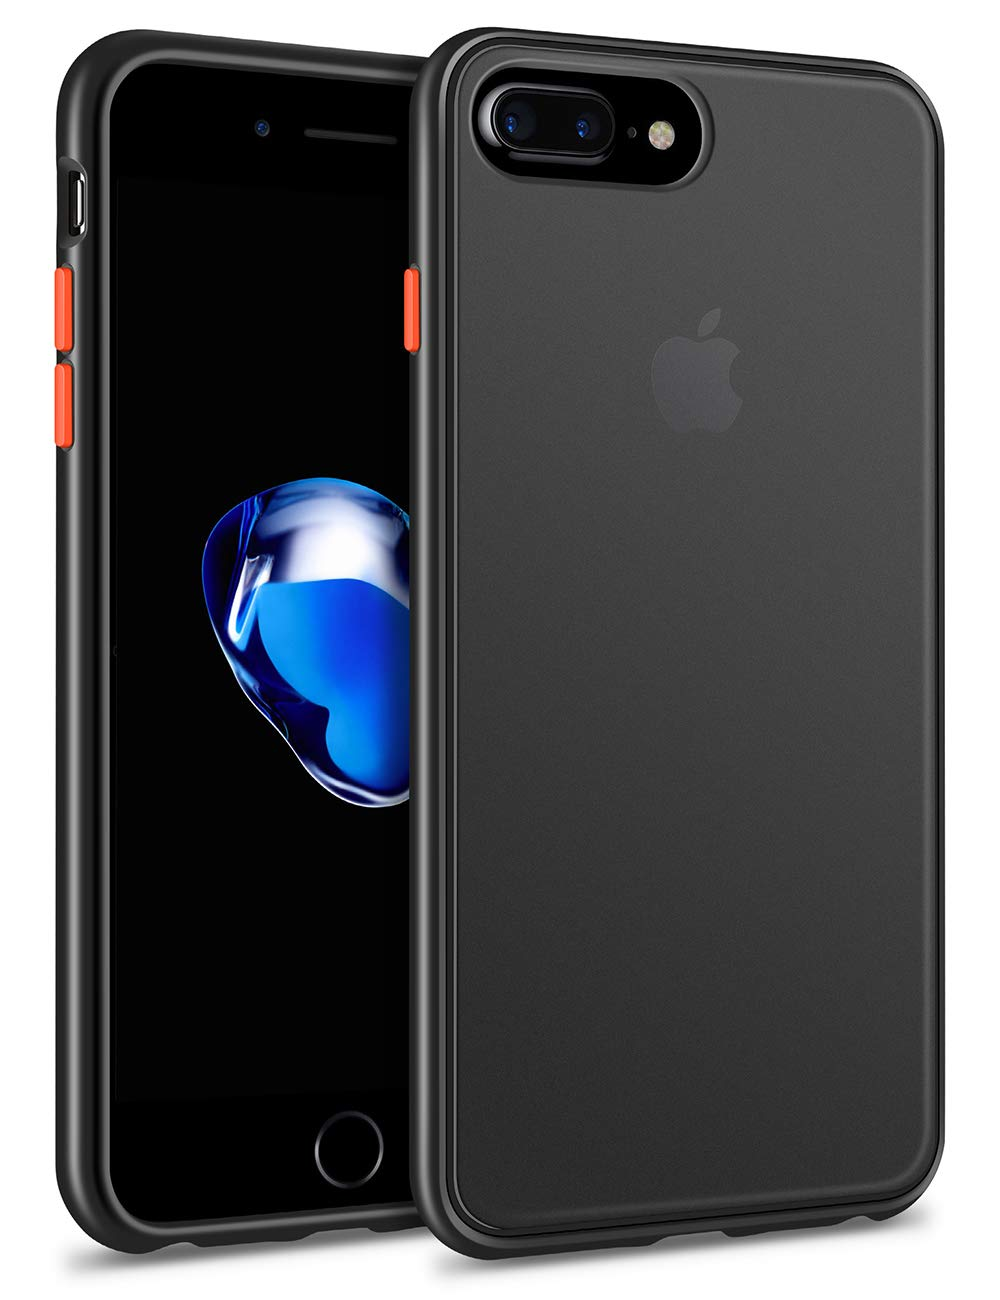 CHEERINGARY Case for iPhone 11 Case Protective Shockproof Heavy Duty Anti-Scratch Cover iPhone 11 Case for Men Women Full Body Protection Dust Proof Anti-Slip Cover for iPhone 11 6.1 inches Deep Black